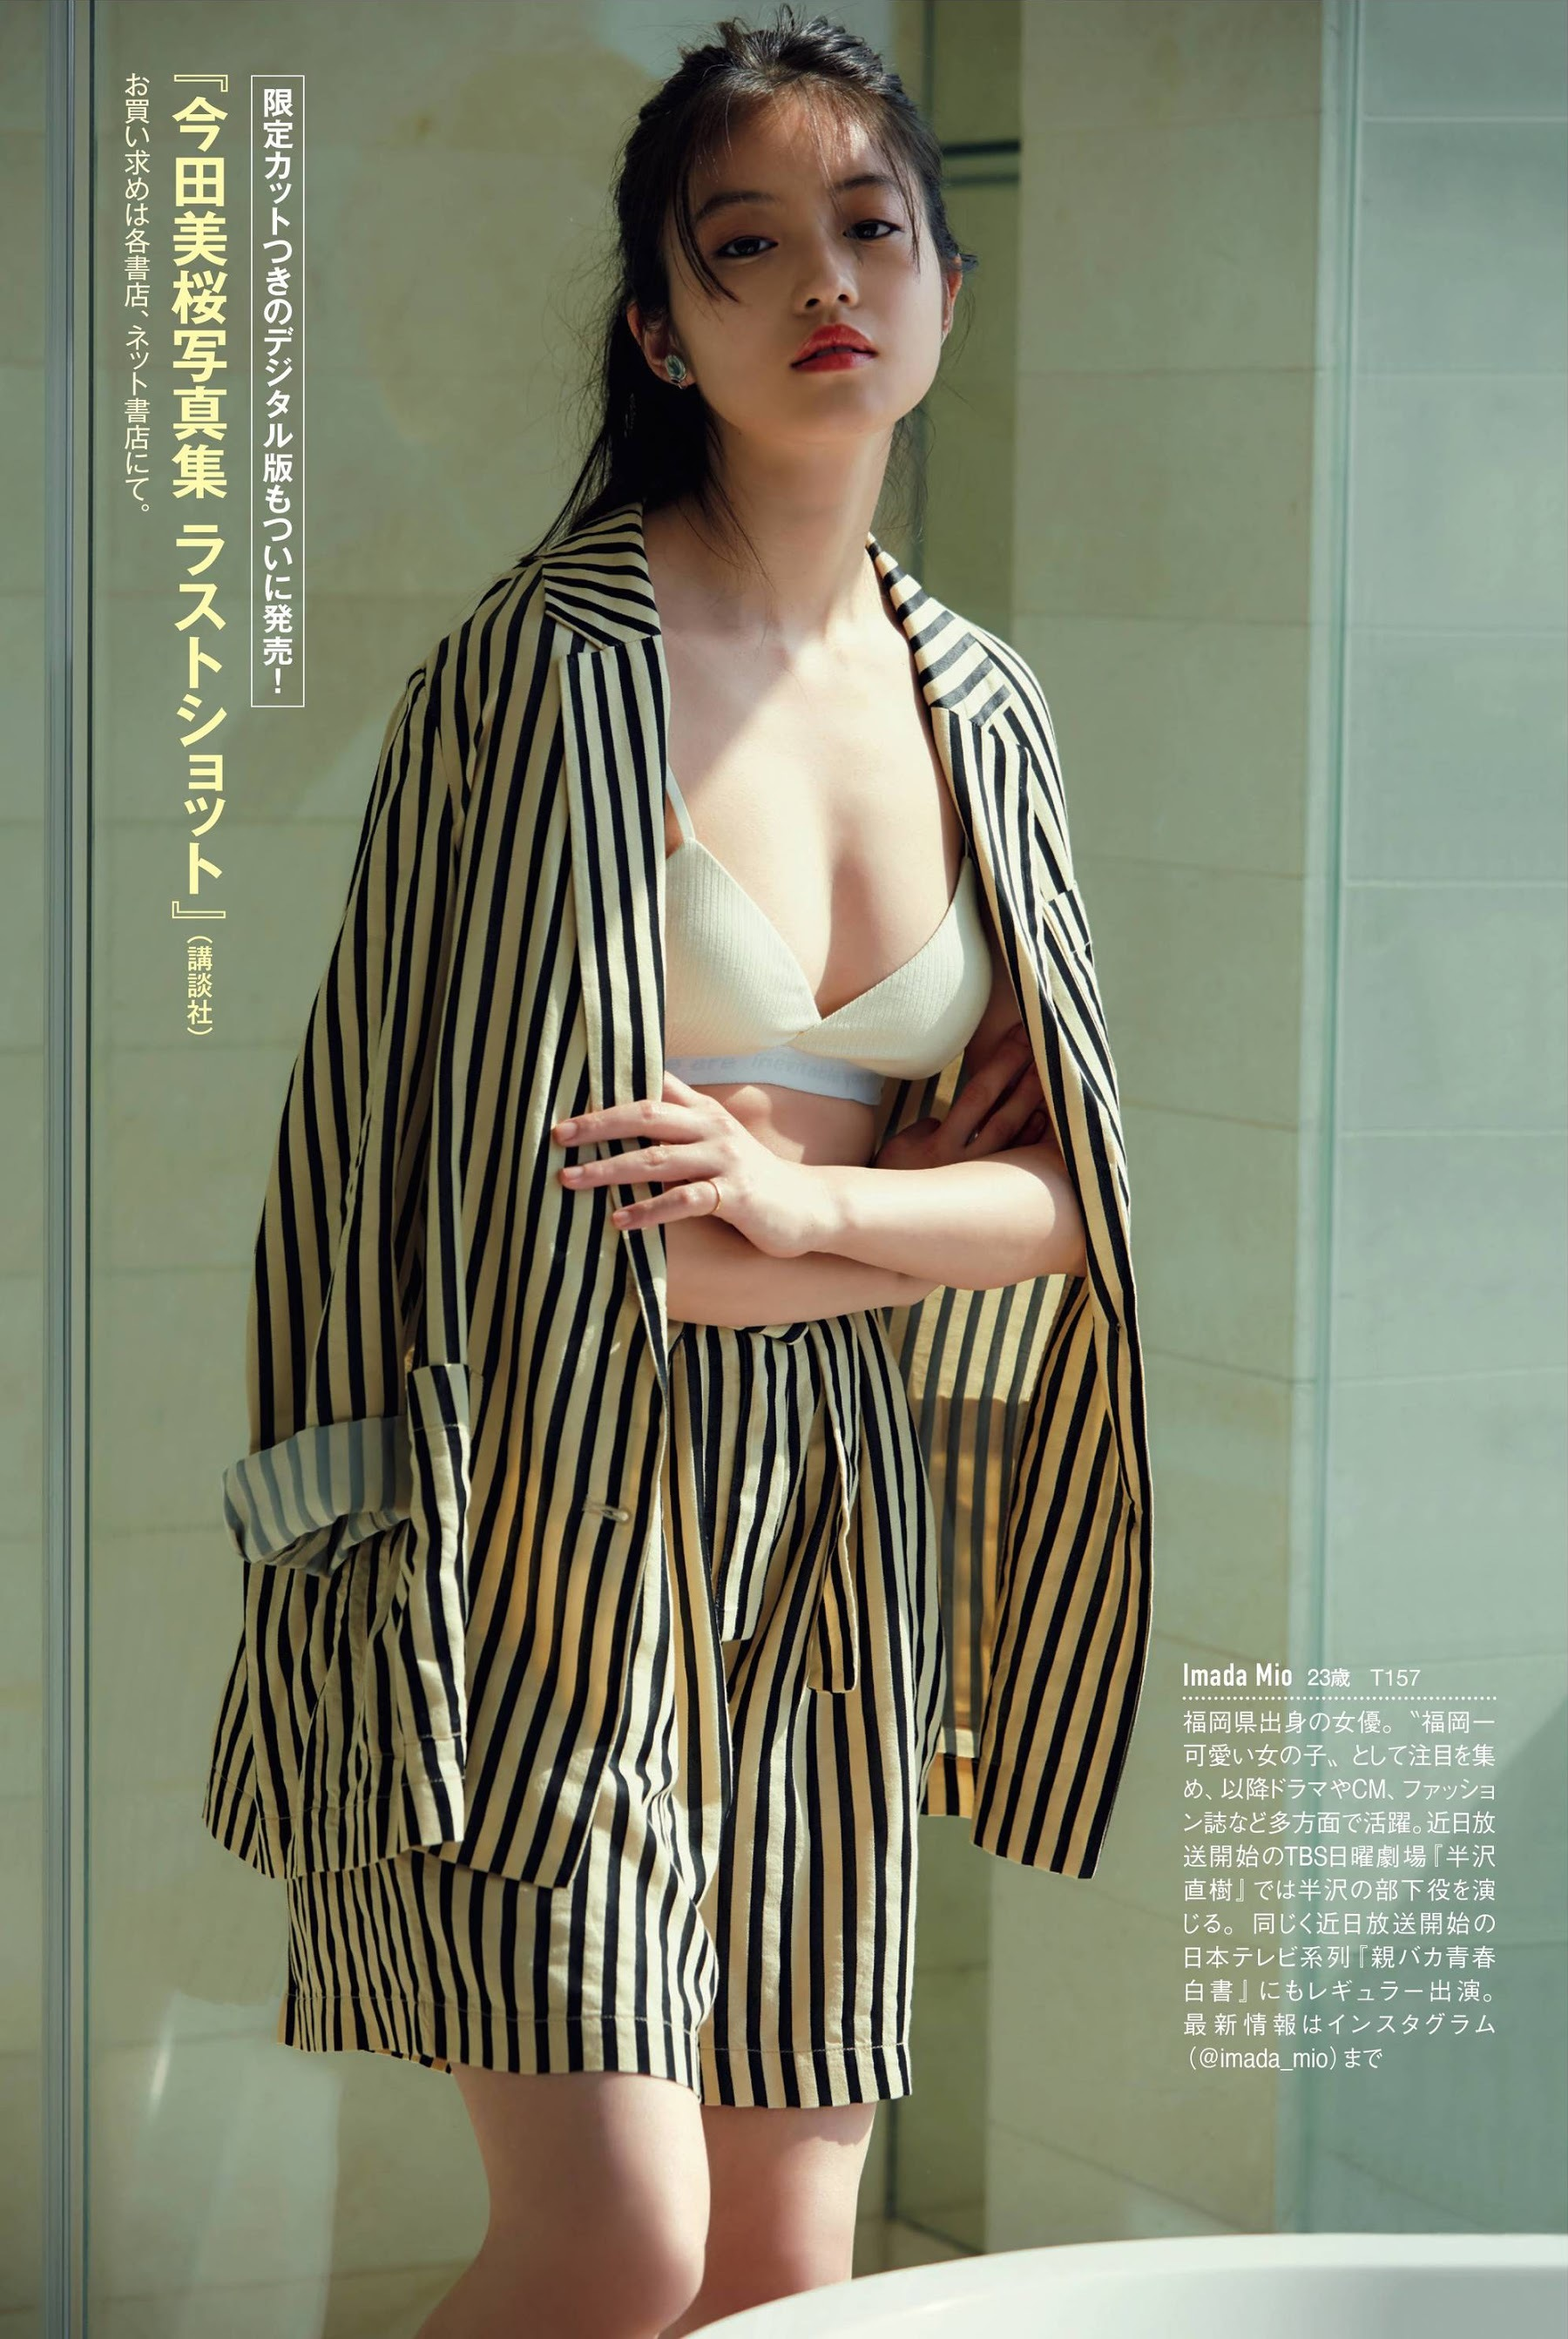 This is really the last time well be seeing her Final Swimsuit Mio Imada 2020014